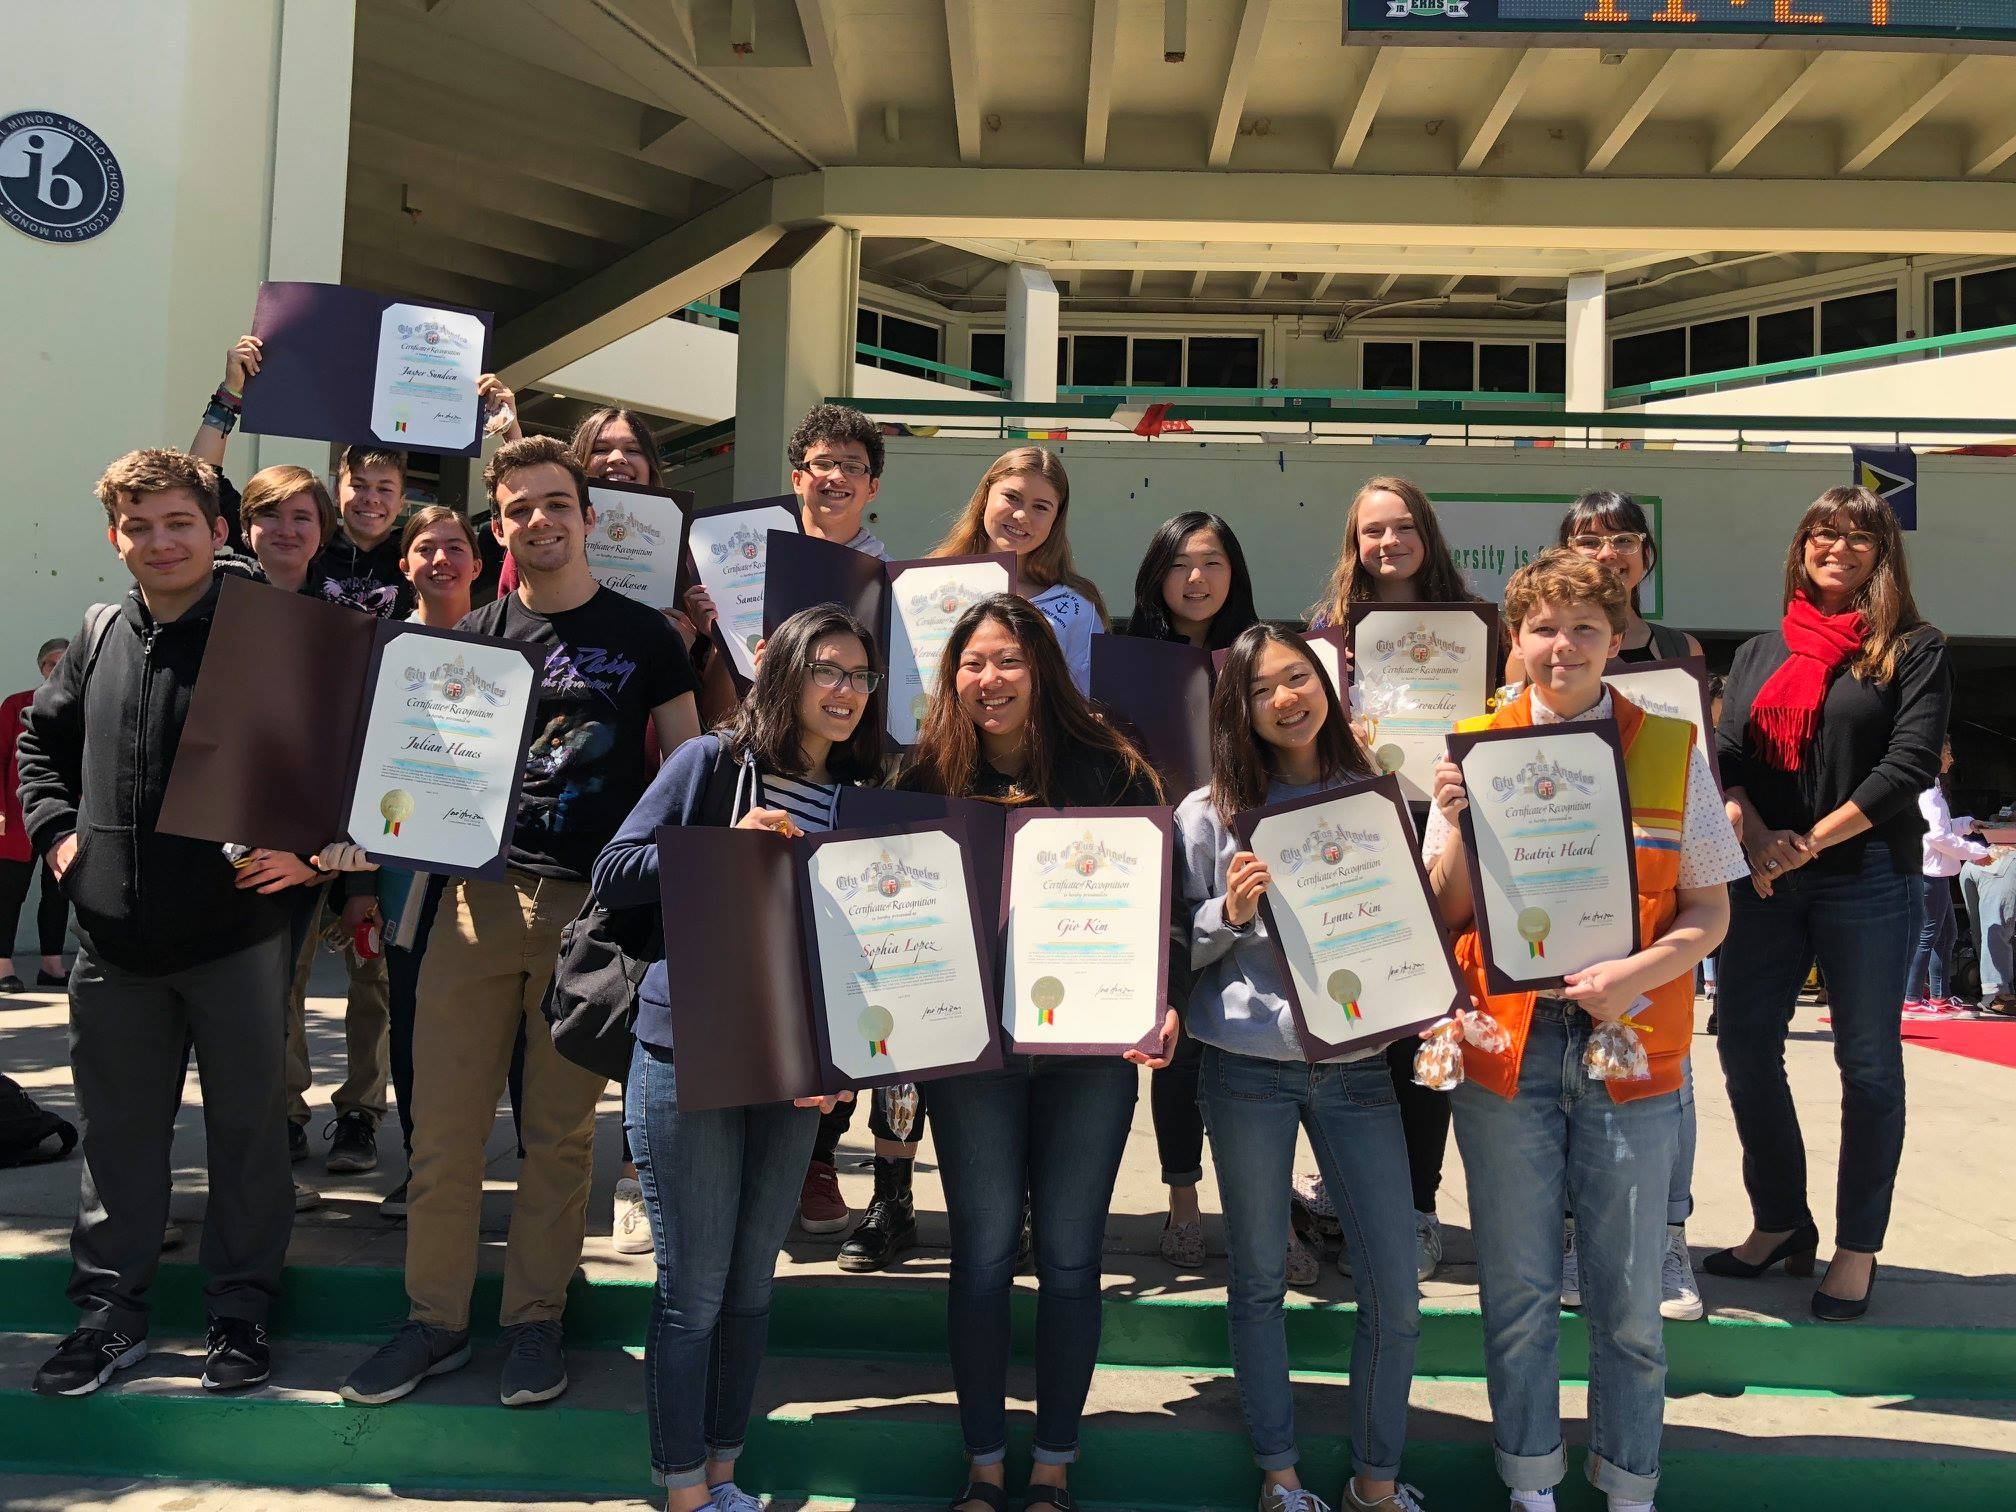 Congratulations_to_ERHS_Model_United_Nations_for_being_honored_with_an_award_of_recognition_by_the_City_of_Los_Angeles_for_receiving_the_Award_of_Excellence_at_the_National_High_School_Model_United_Nations_Conference_i.jpg